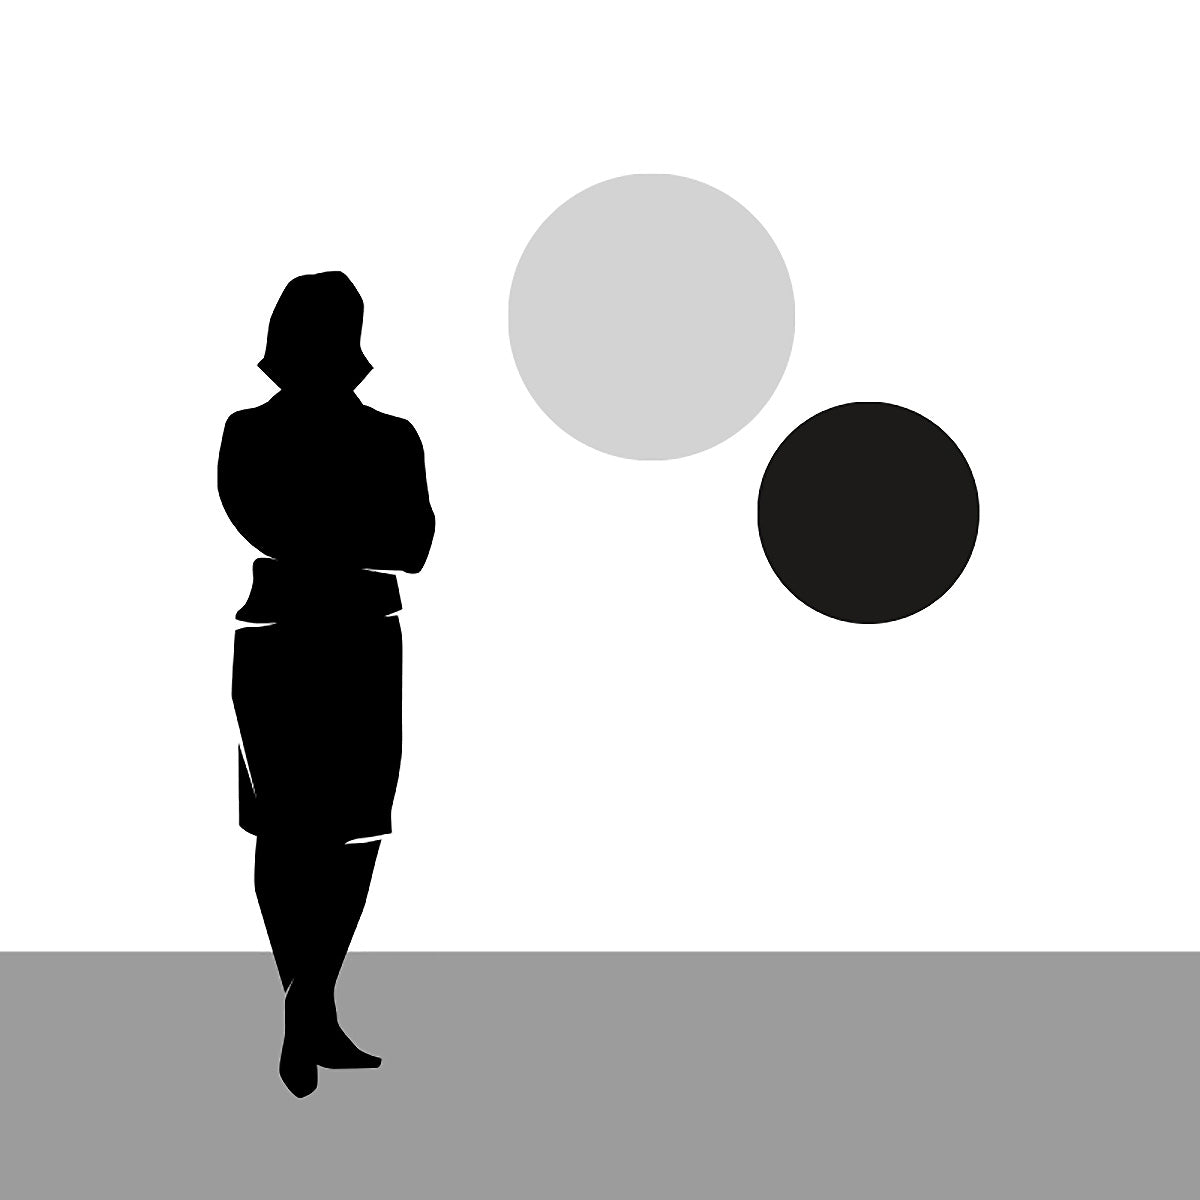 Diagram showing the size of the 15.4 inch Diameter Pond Wall Art in relation to a person silhouette.